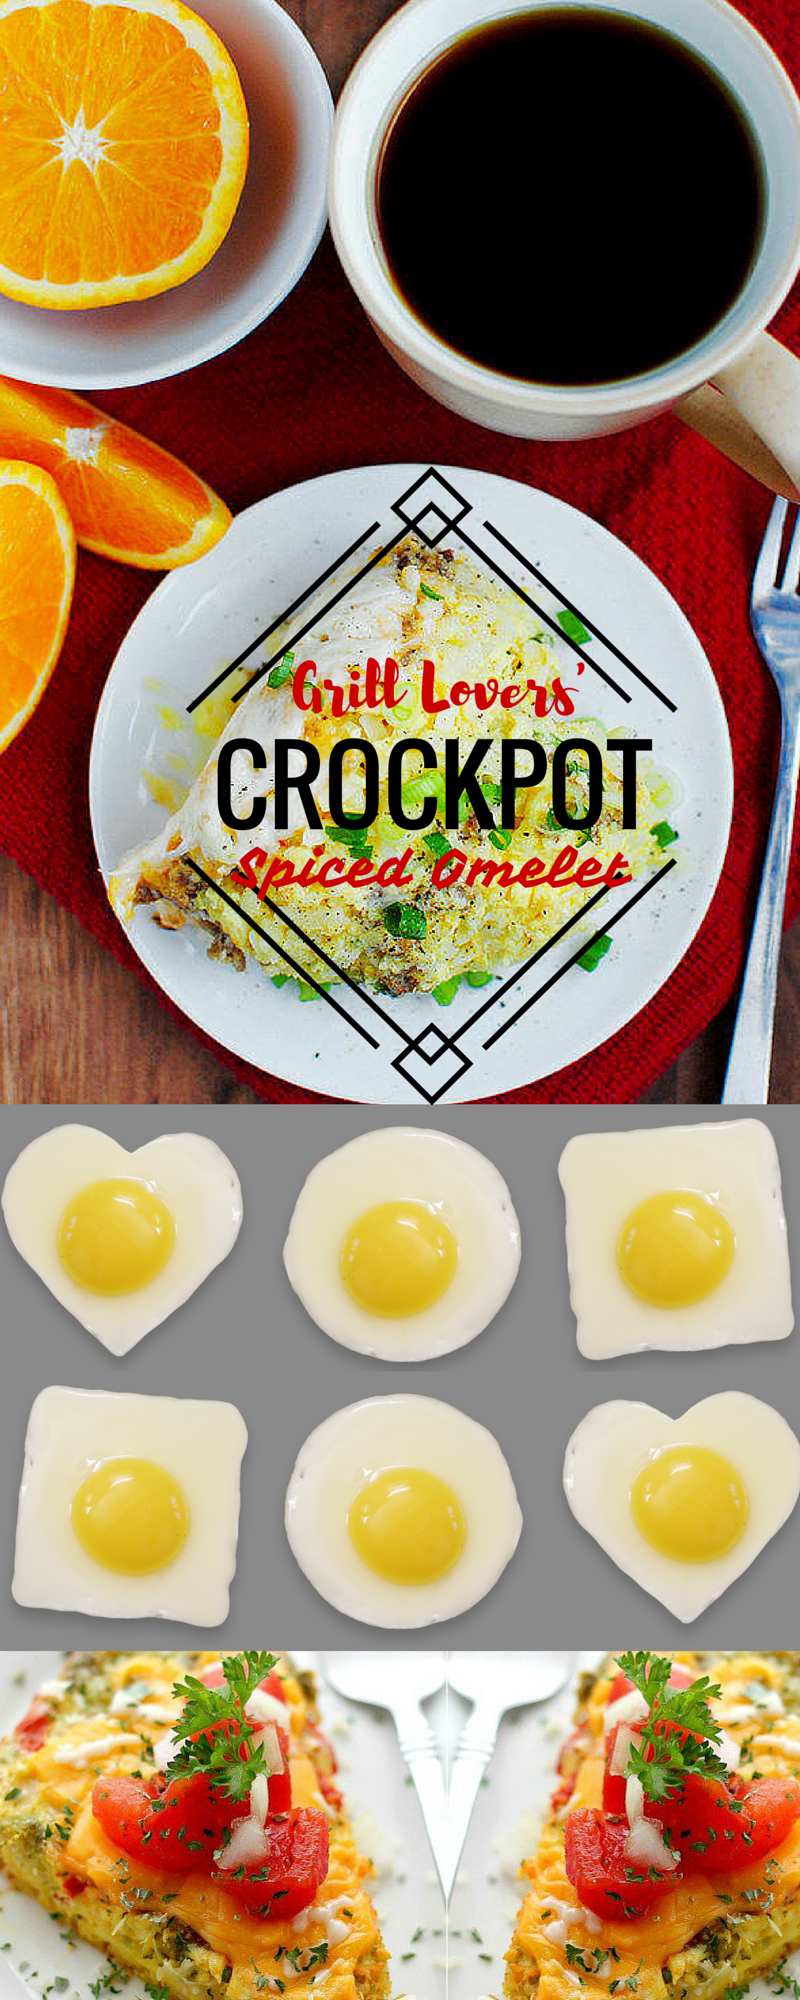 Crockpot spiced omelet recipe ready in about 8 hours servings crockpot spiced omelet recipe ready in about 8 hours servings 12 forumfinder Gallery